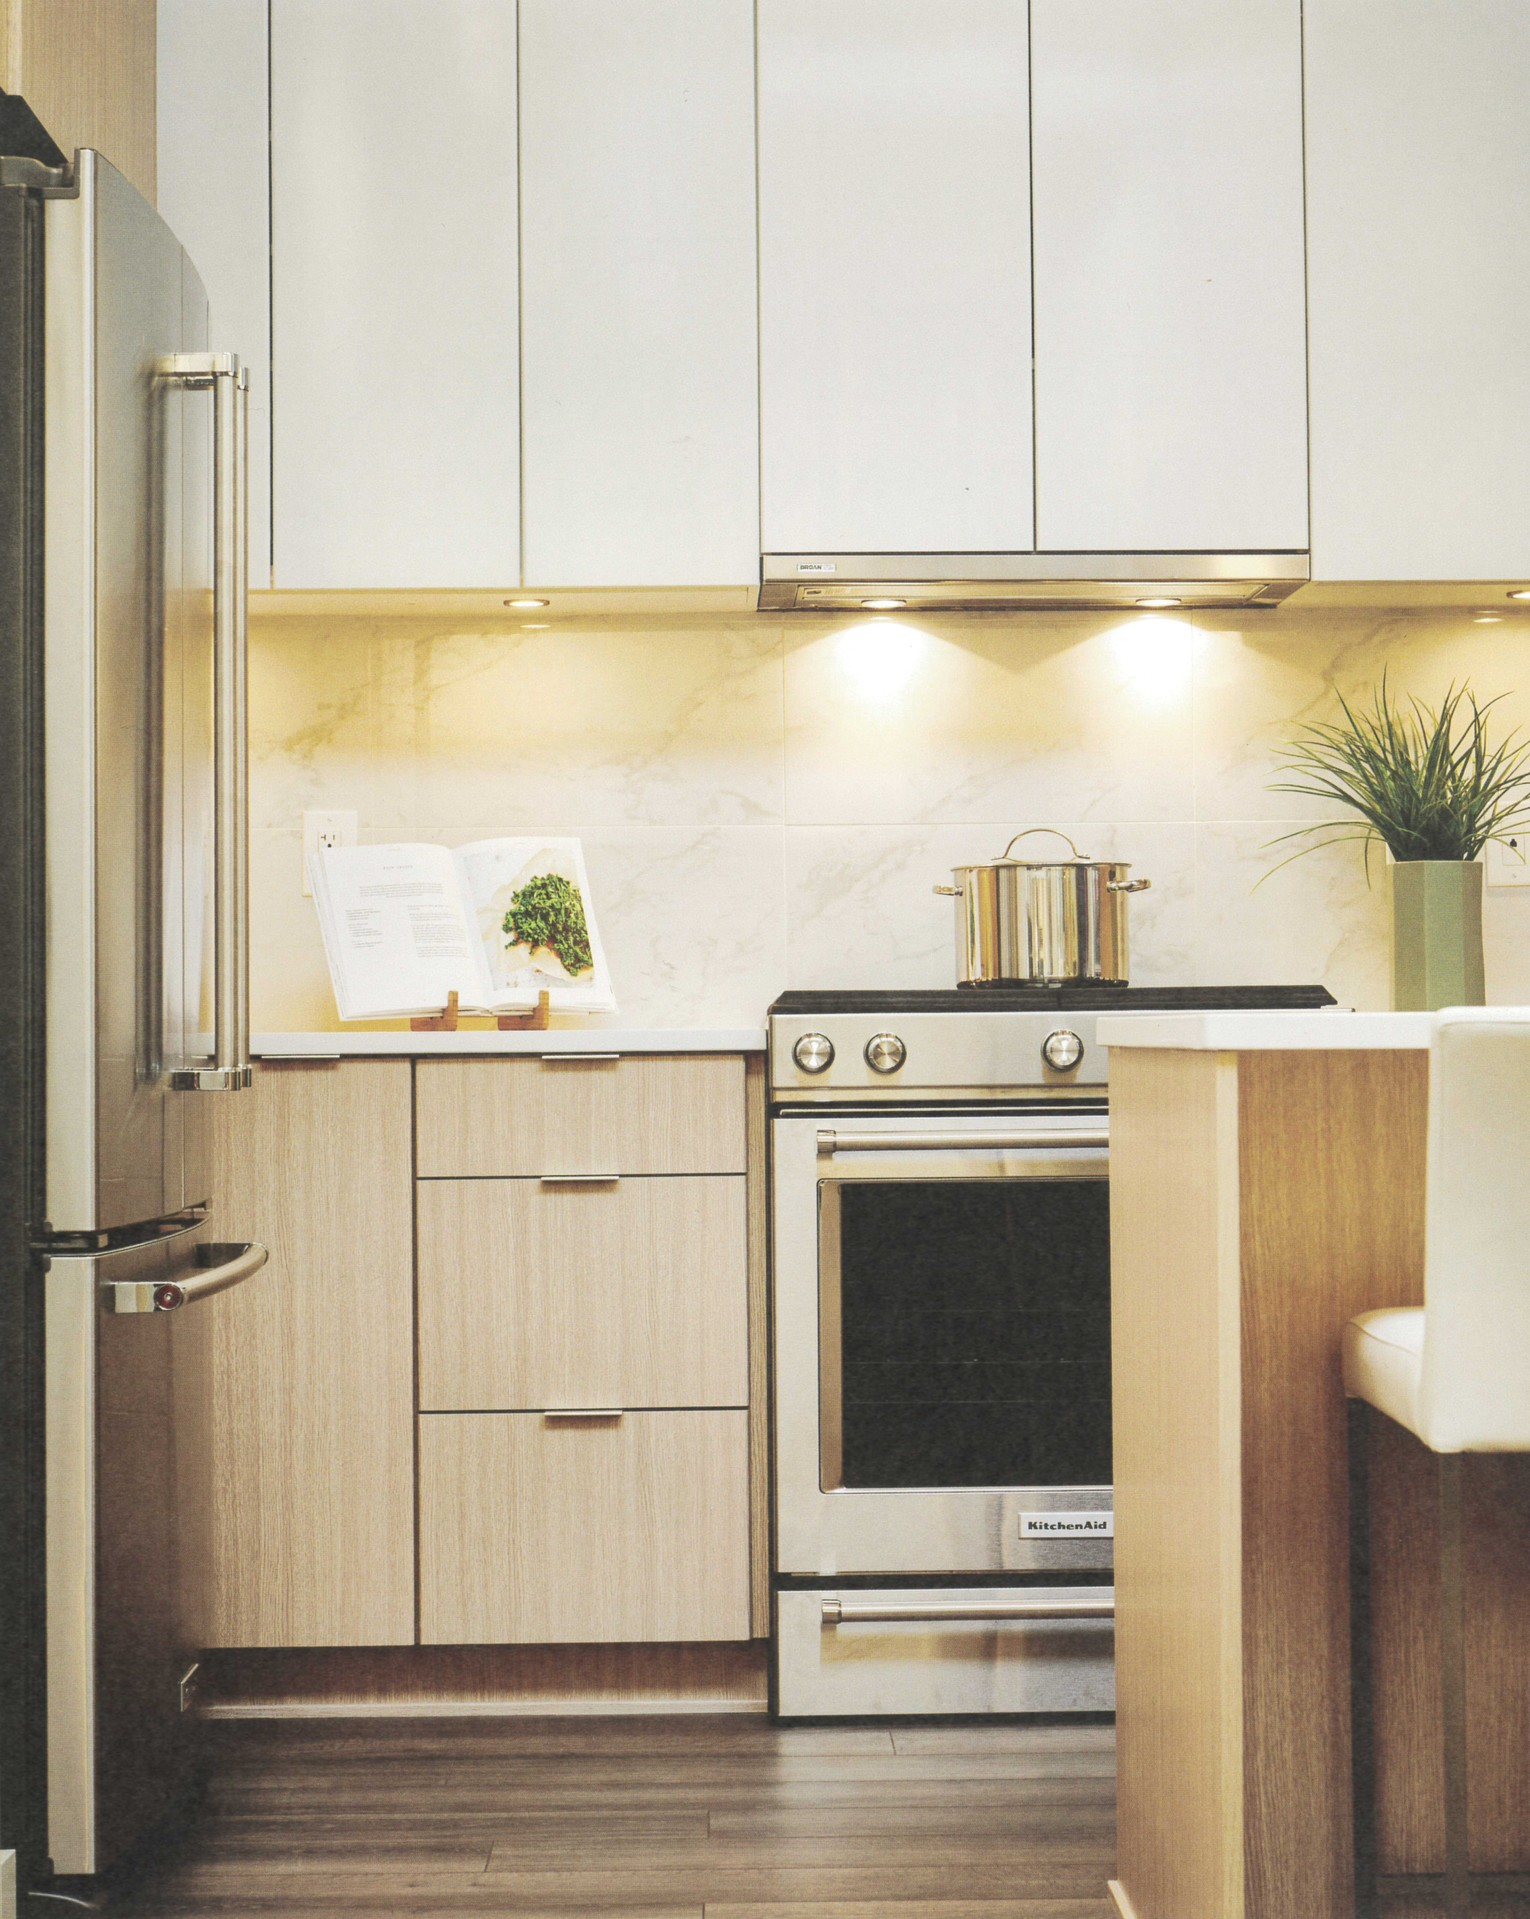 kitchen at 504 - 1012 Auckland Street, Uptown NW, New Westminster